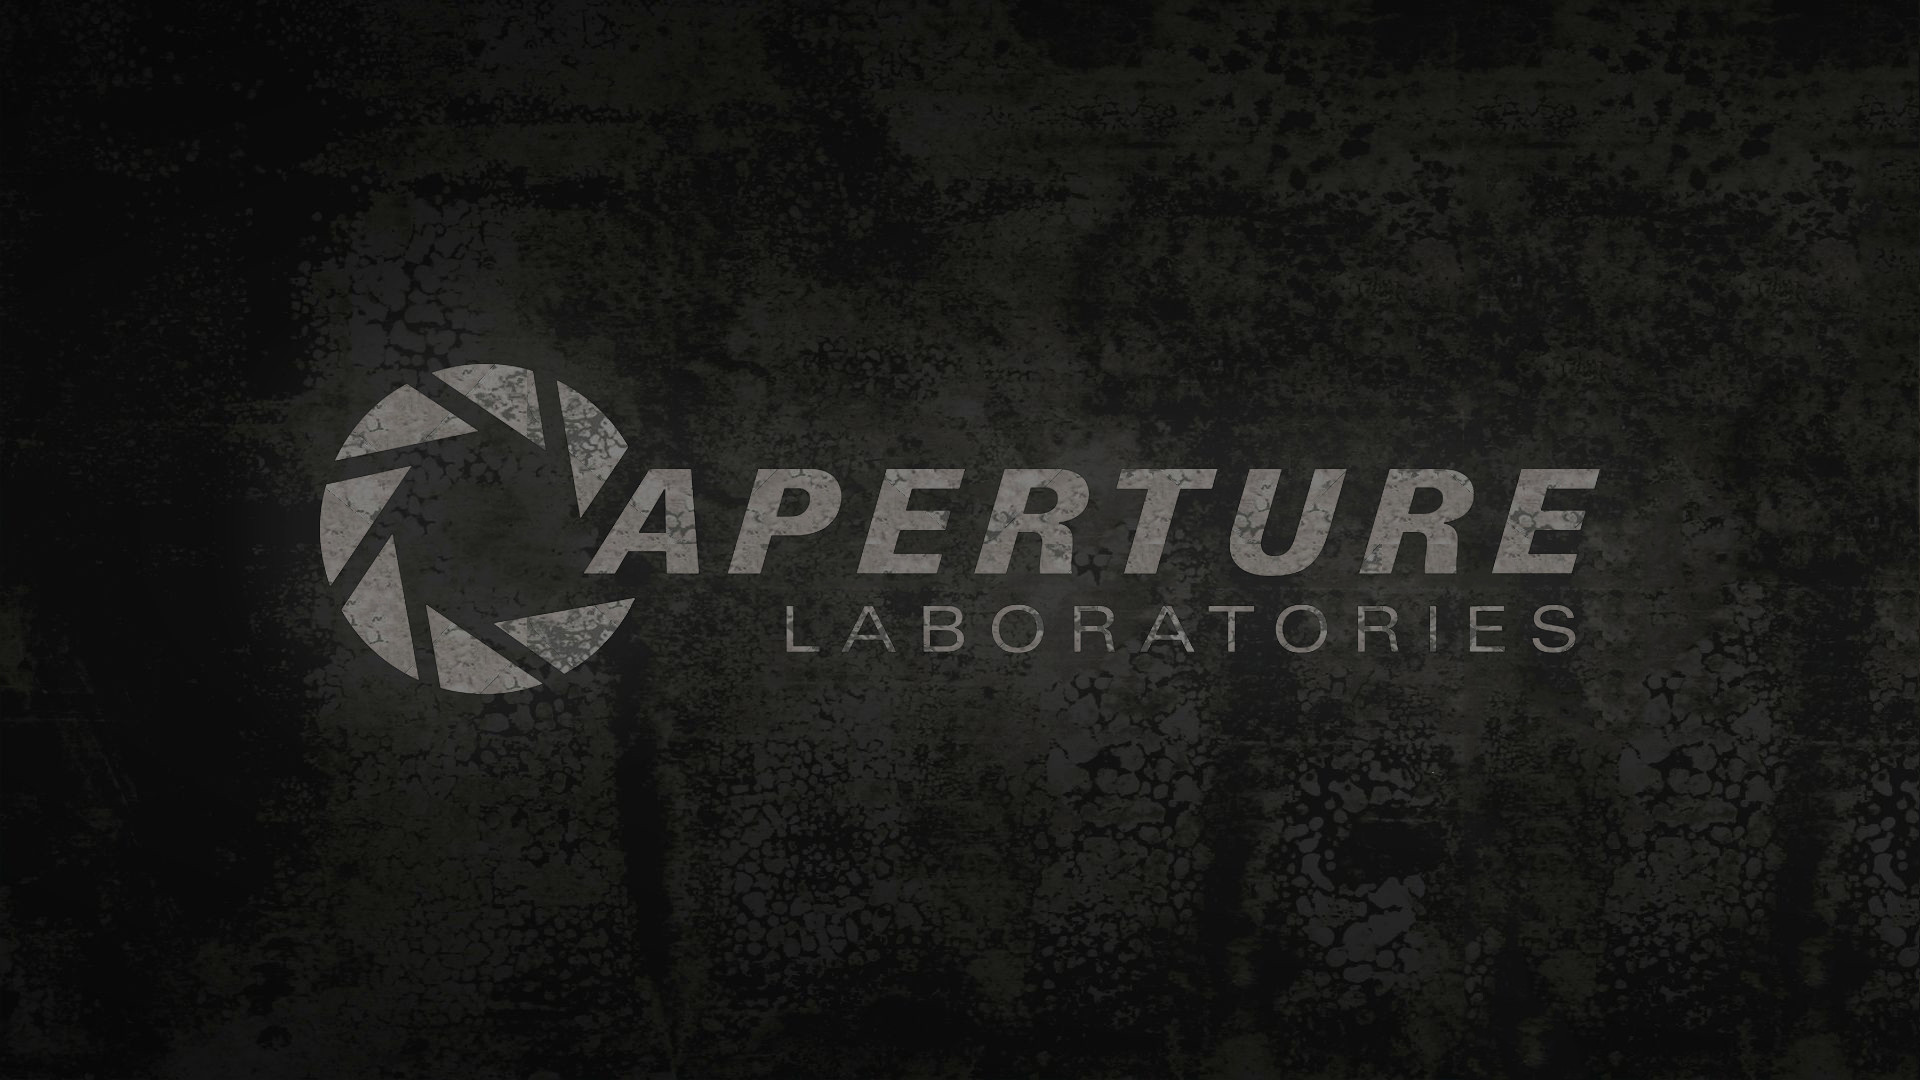 Portal 2 Dual Screen Wallpaper gaming 1920x1080